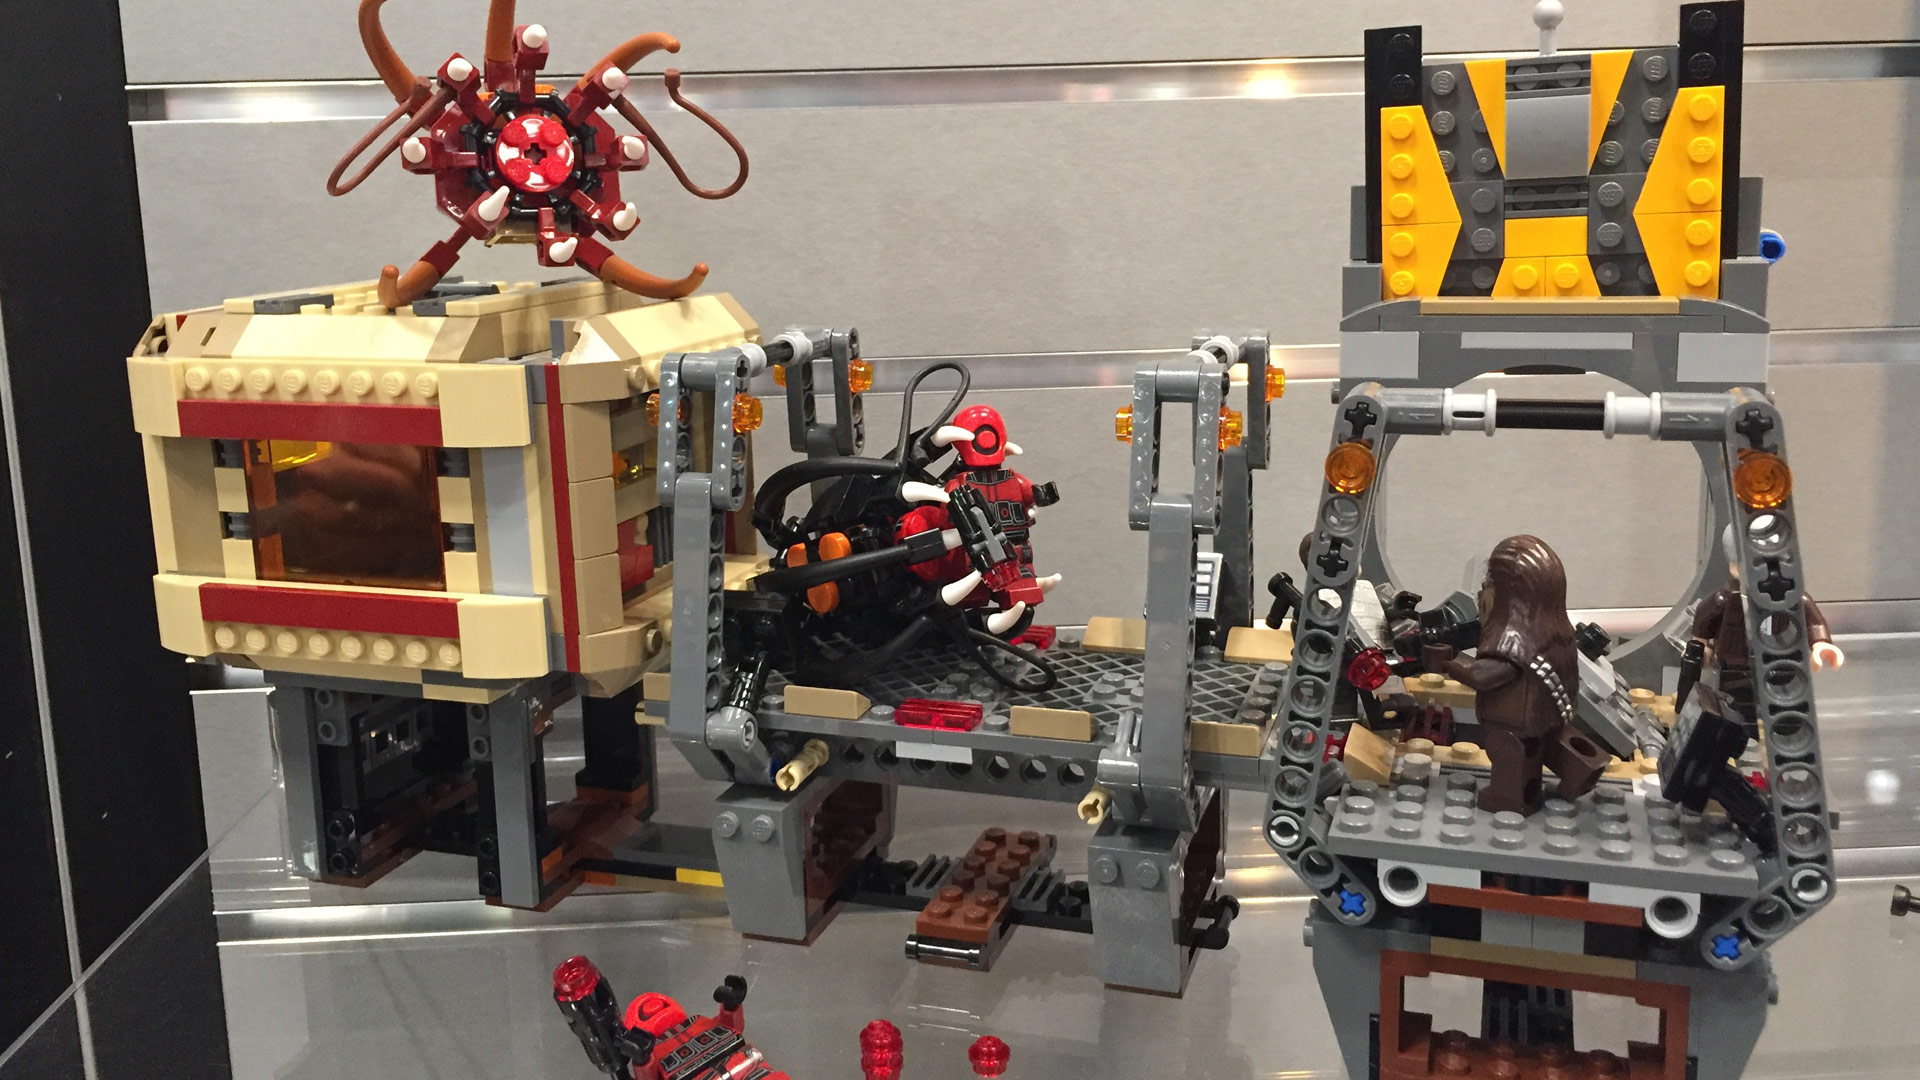 LEGO Star Wars Set 75180 Rathtar Escape at Toy Fair 2017